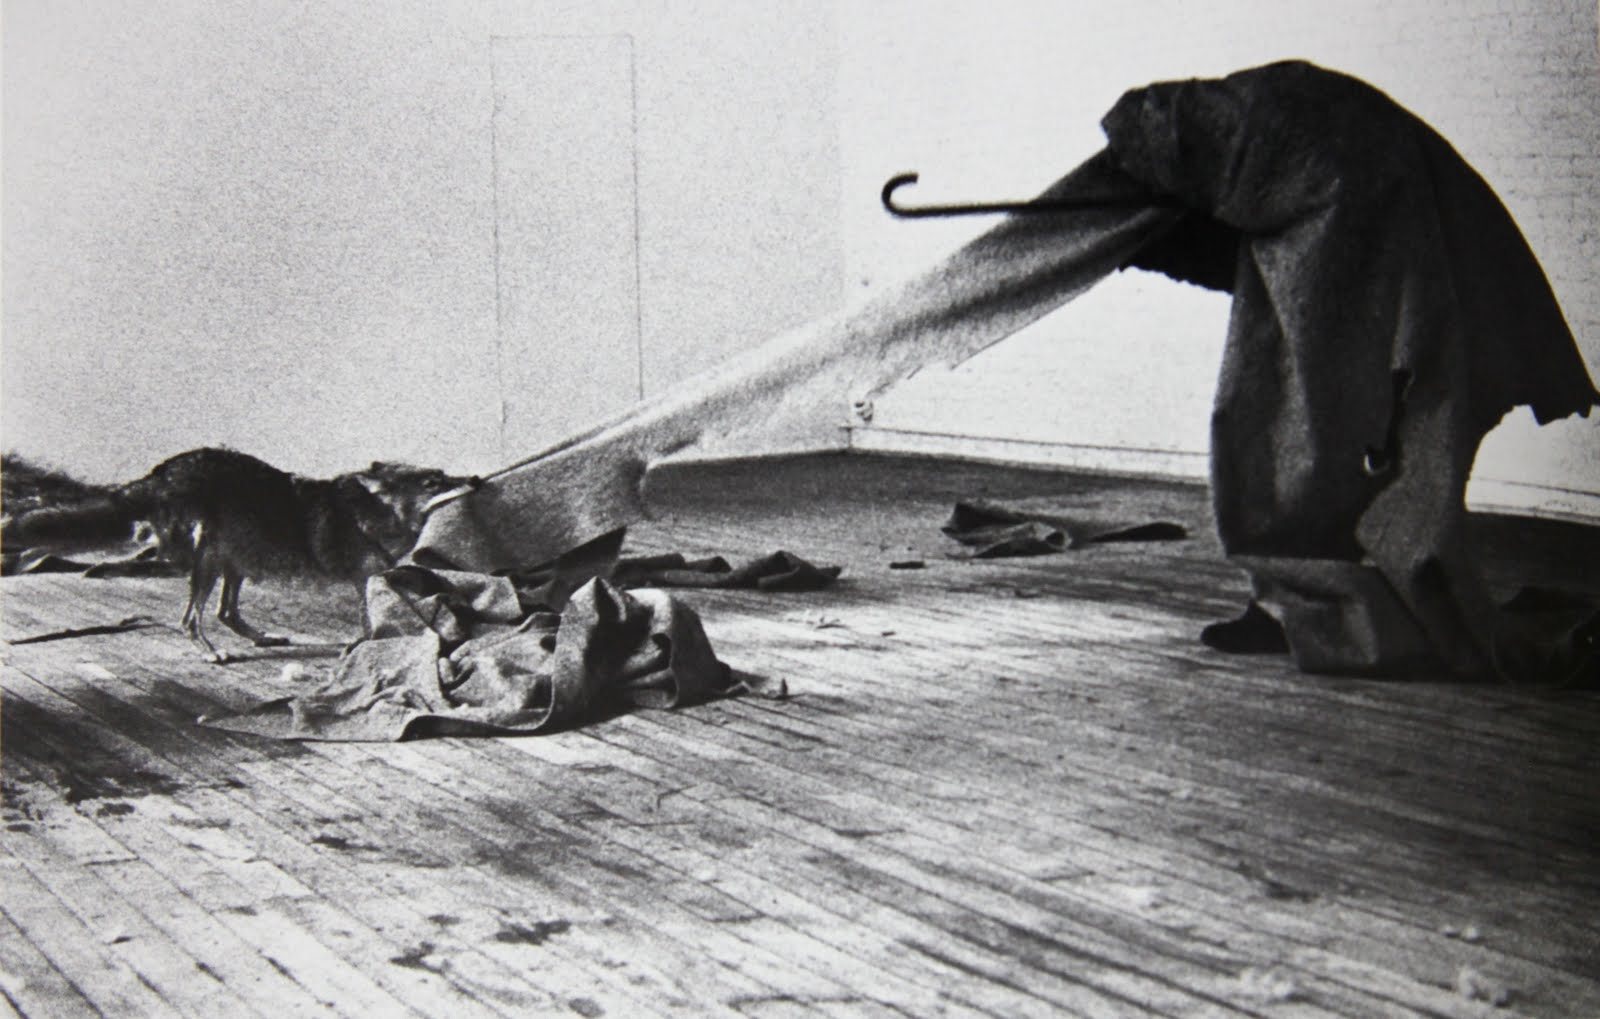 Joseph Beuys - I Like America and America Likes Me